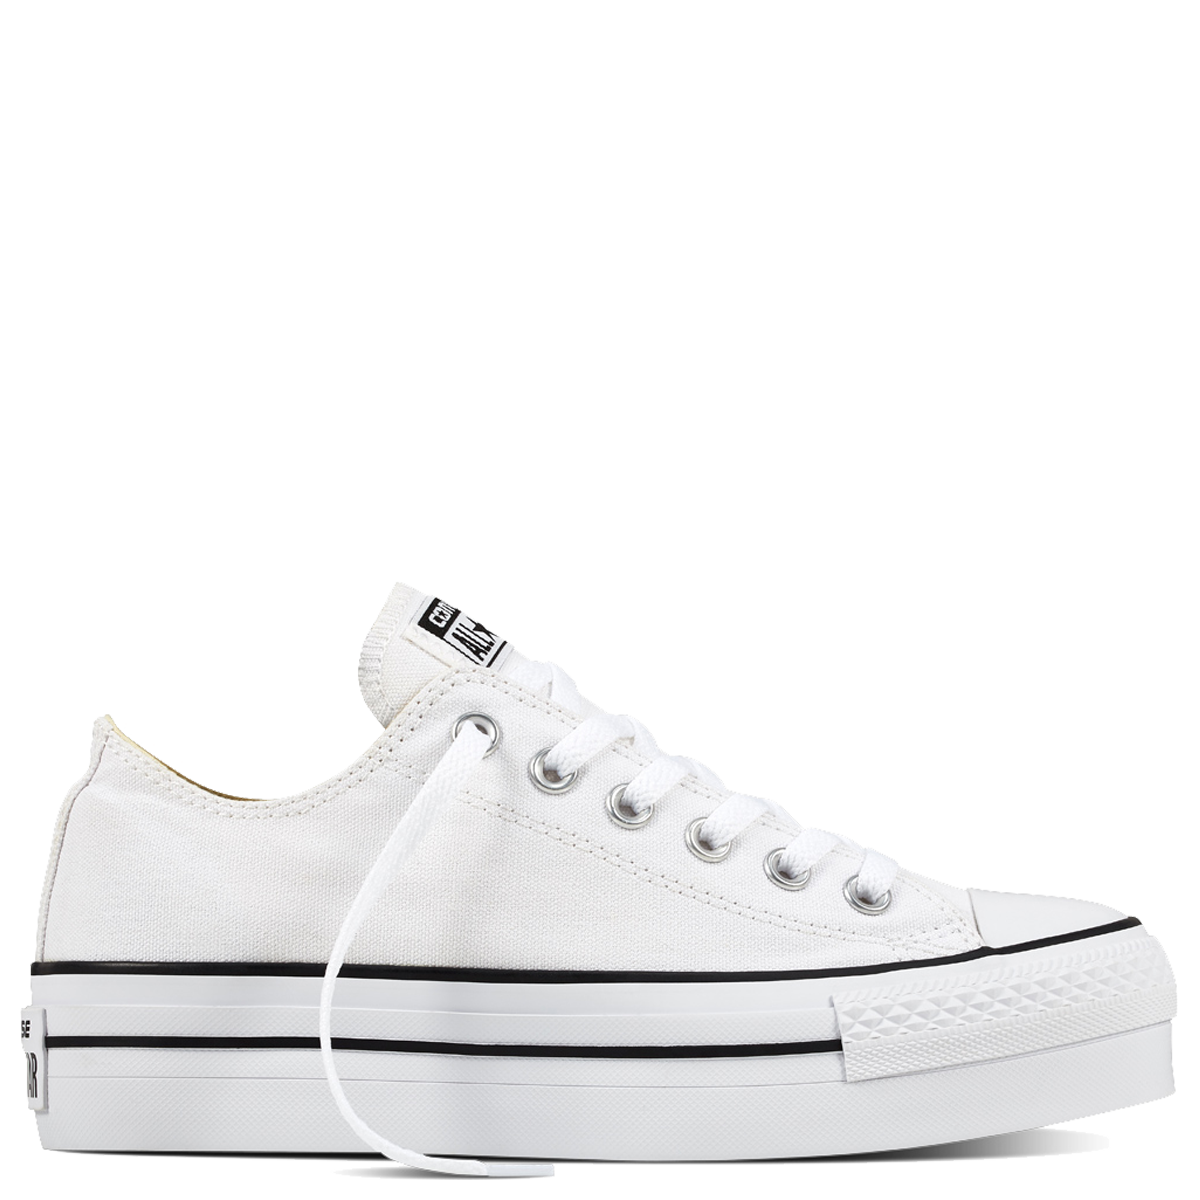 Converse transparent half. All star platform low